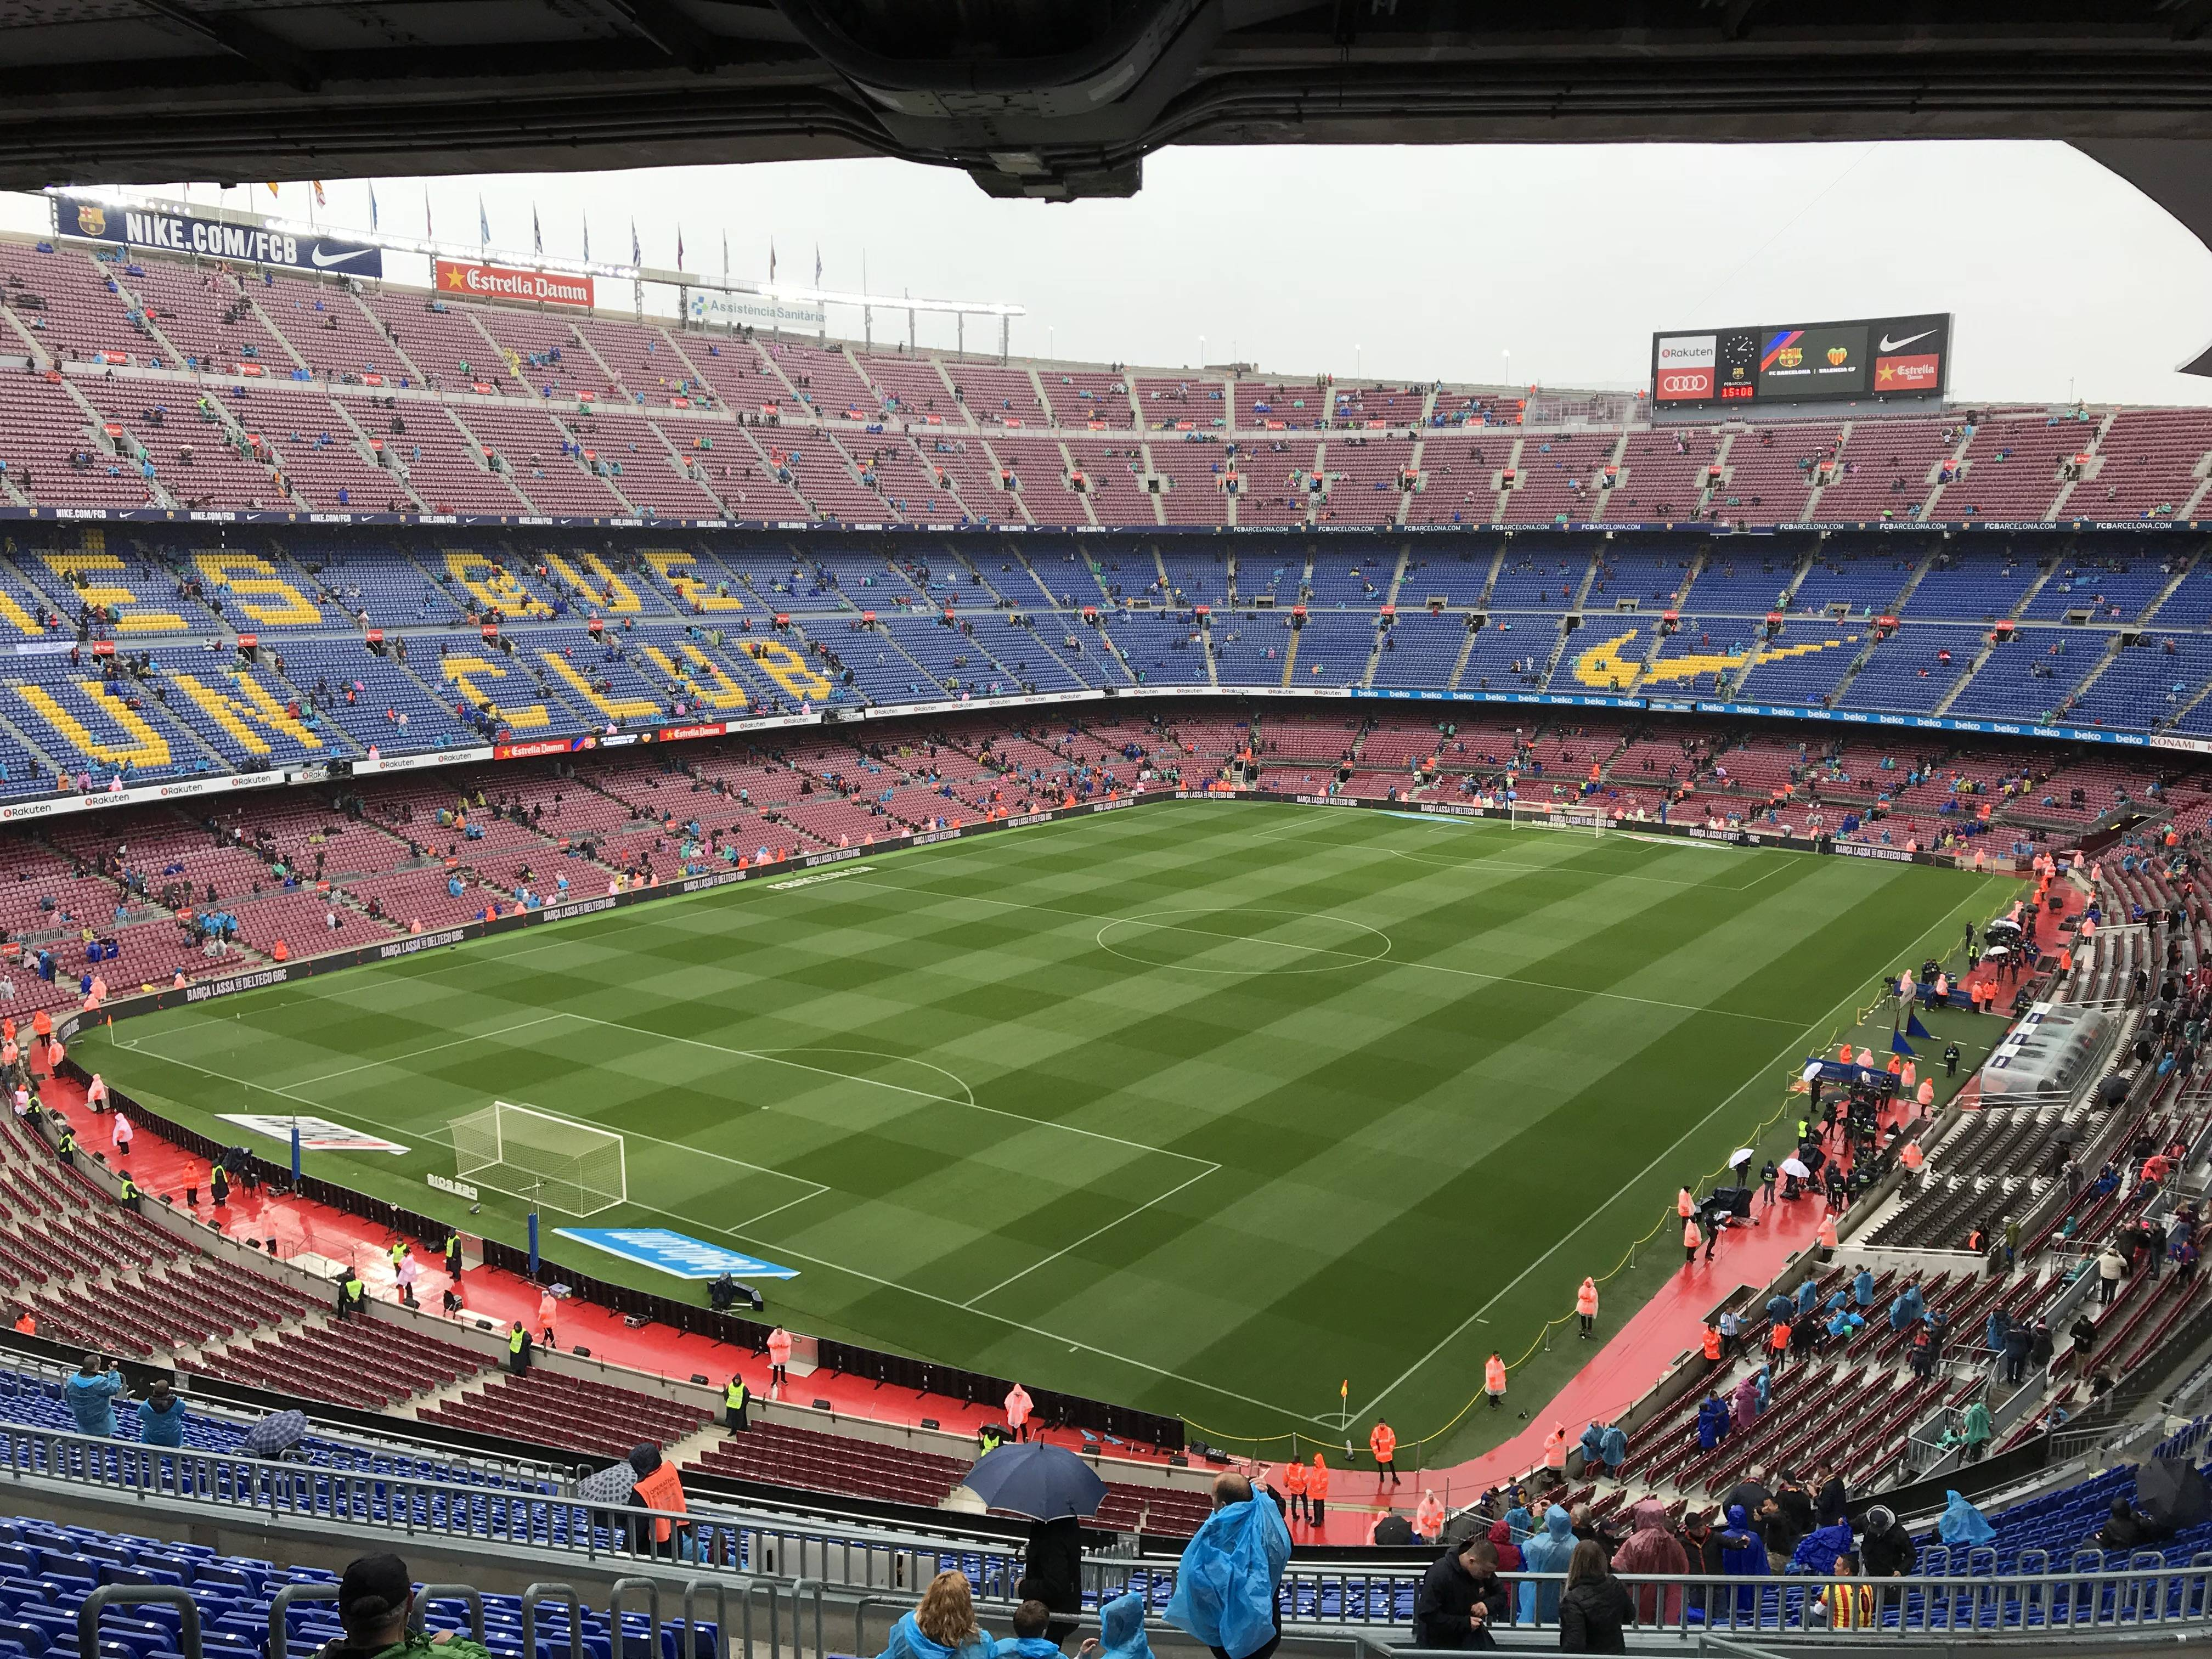 TRAVELOGUE: The LaLiga Experience in Barcelona